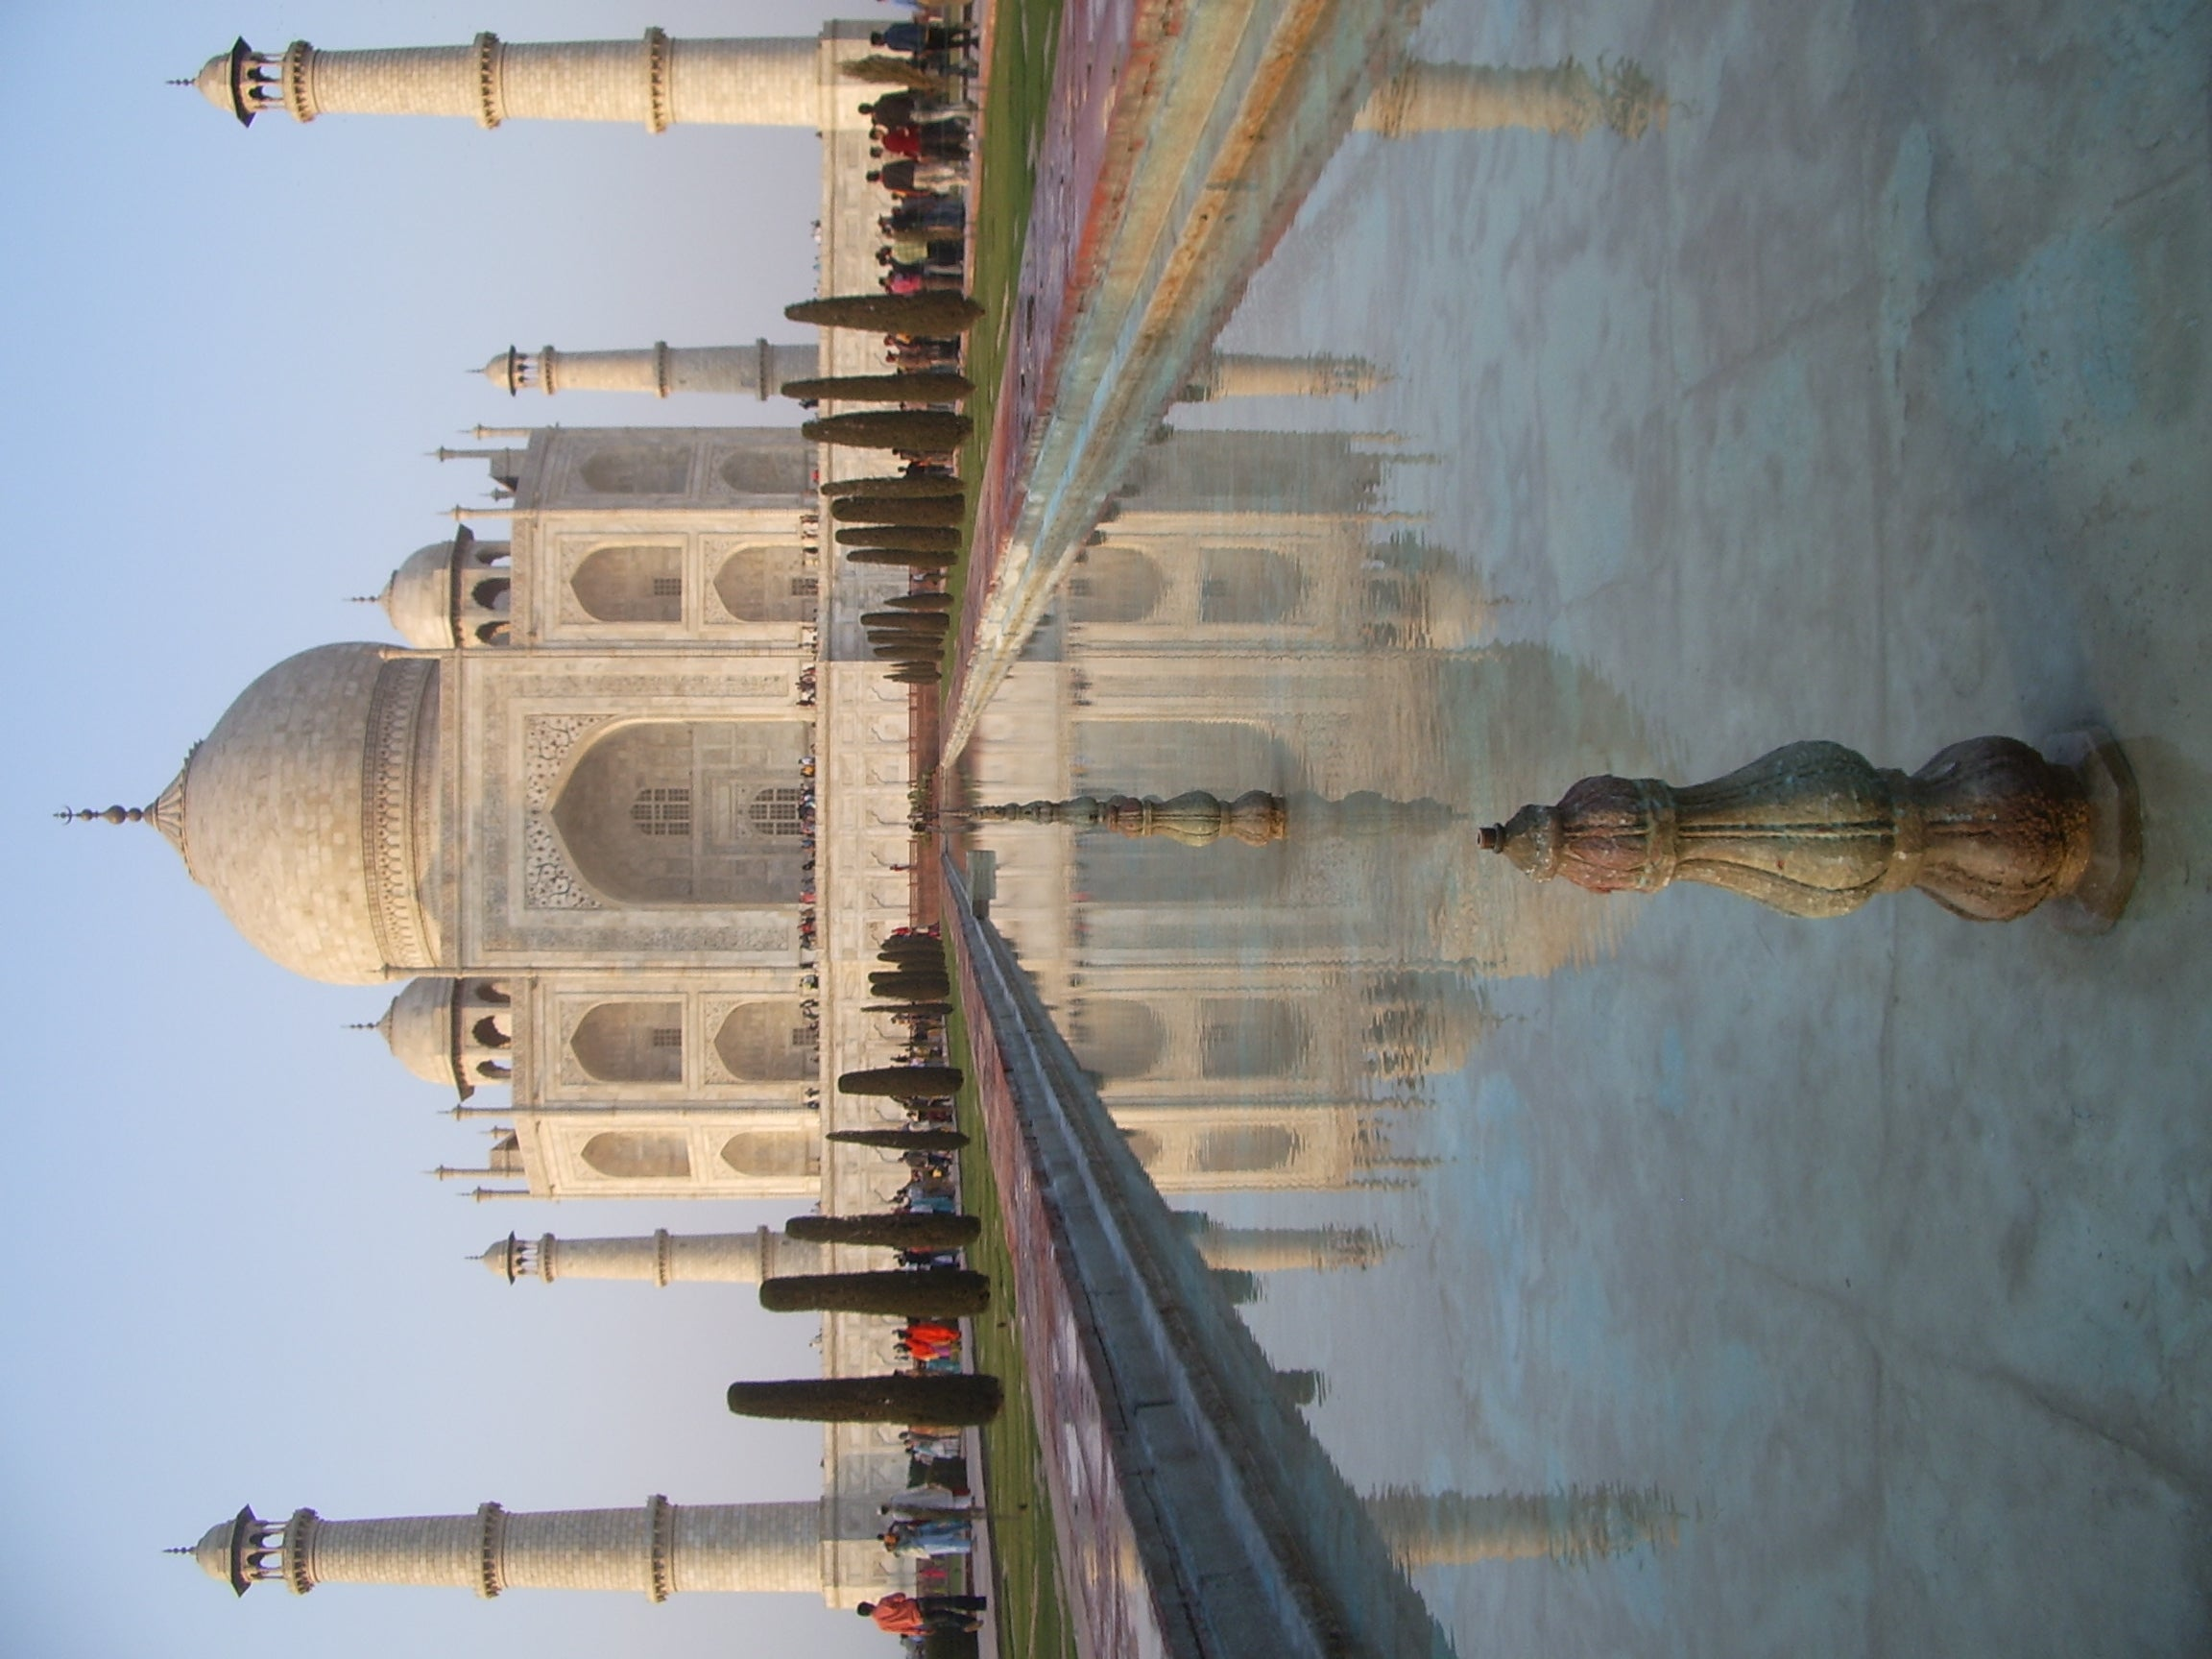 Turismo en Taj Mahal